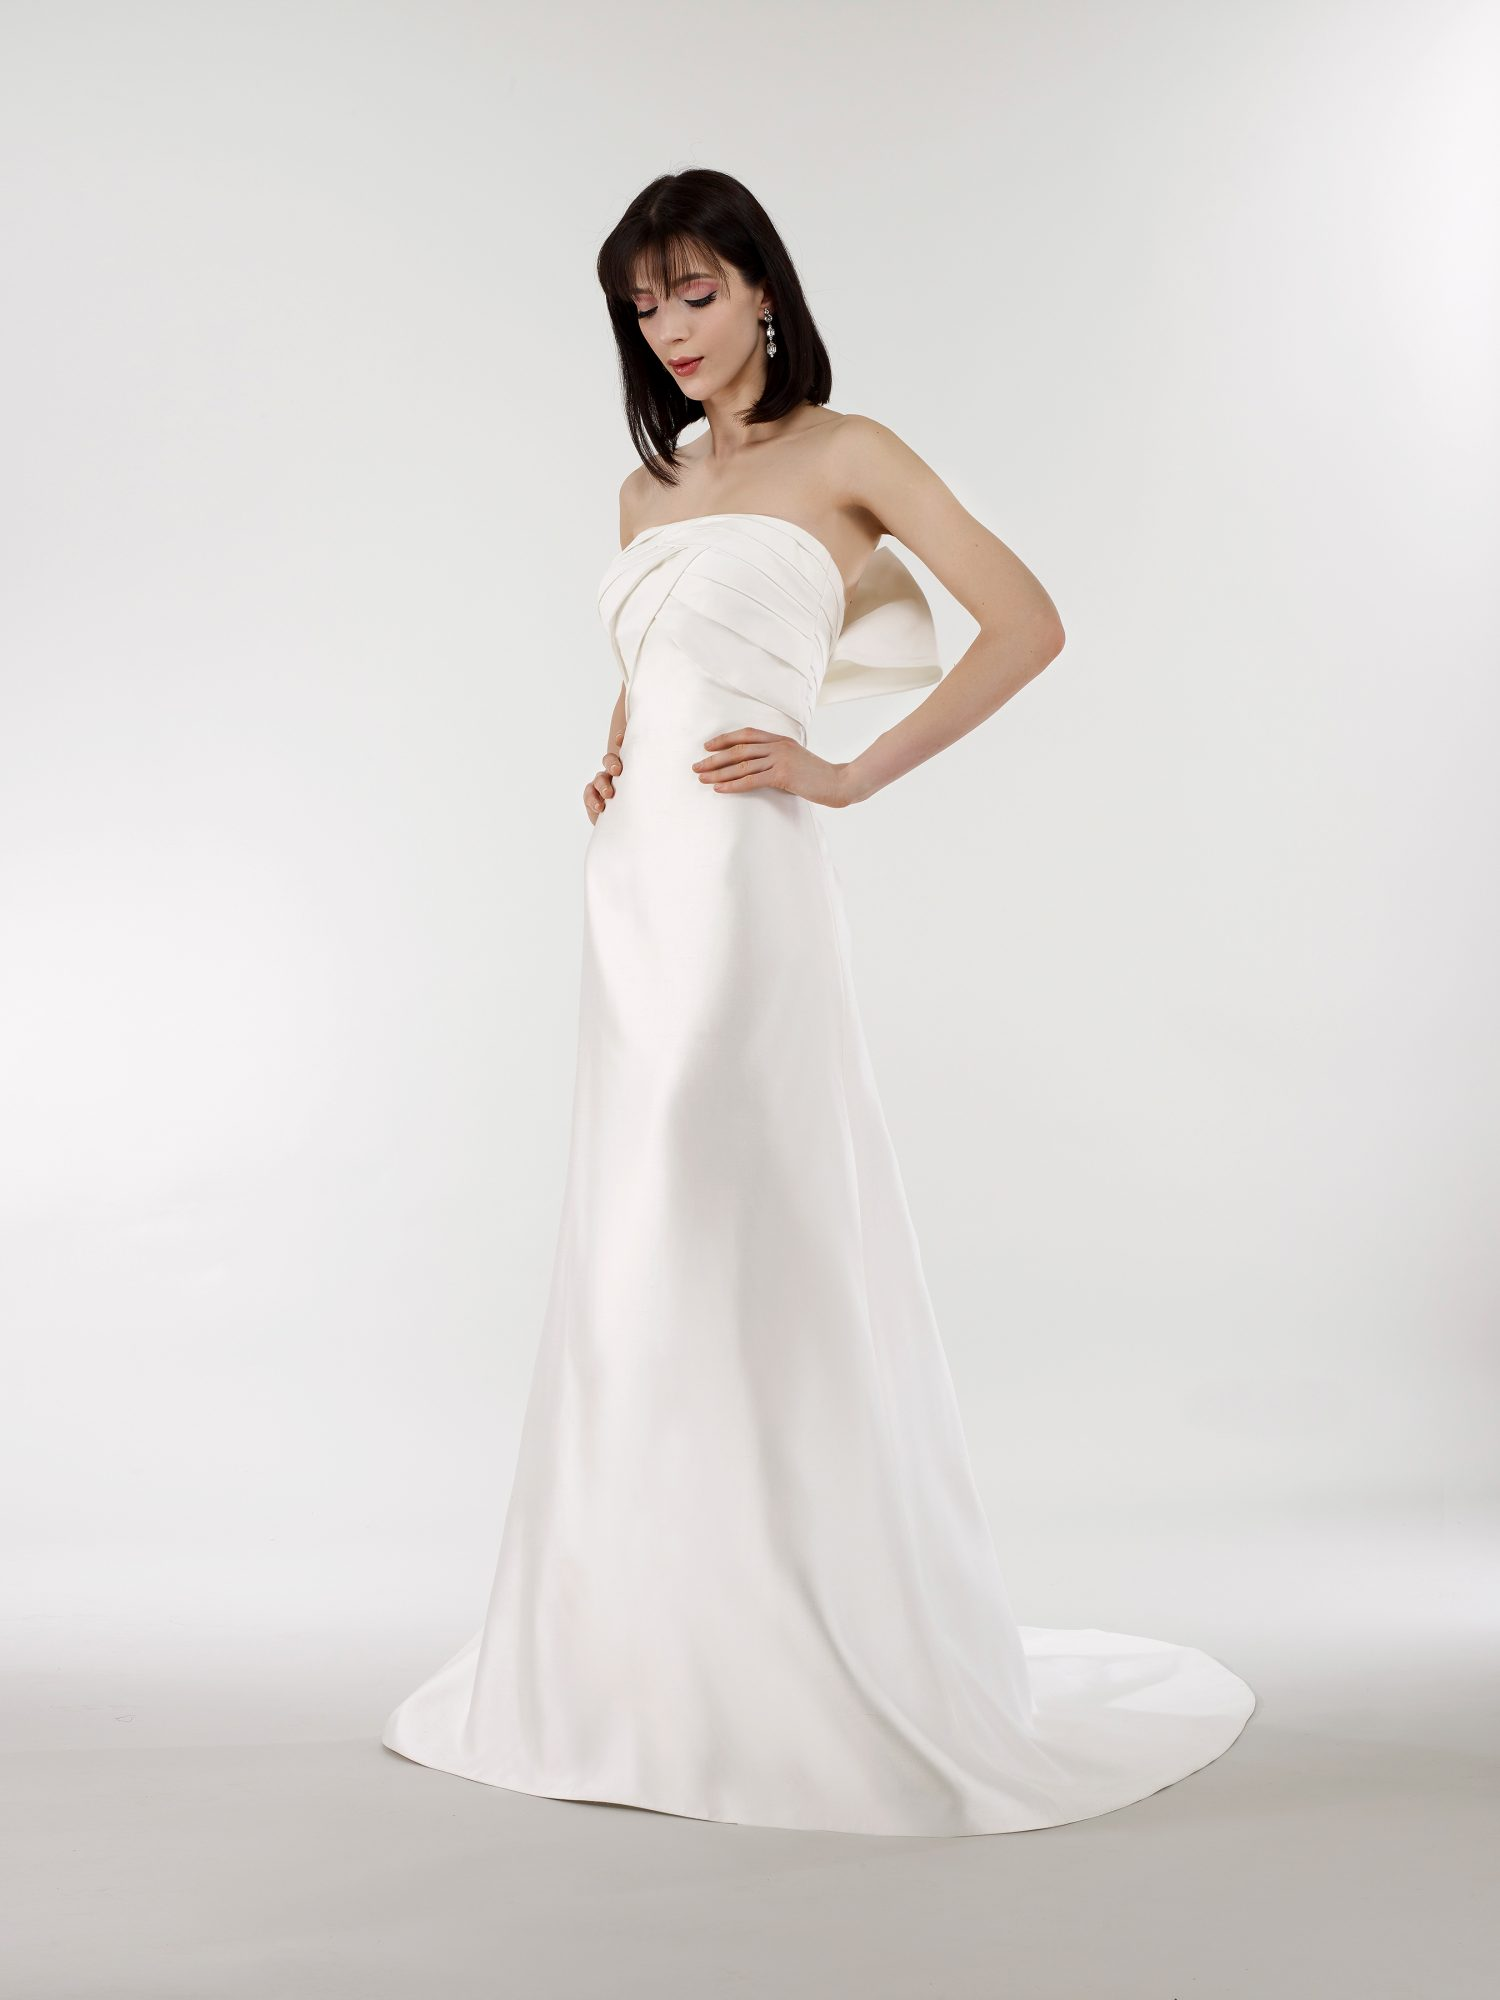 steven birnbaum bridal wedding dress spring 2019 strapless a-line